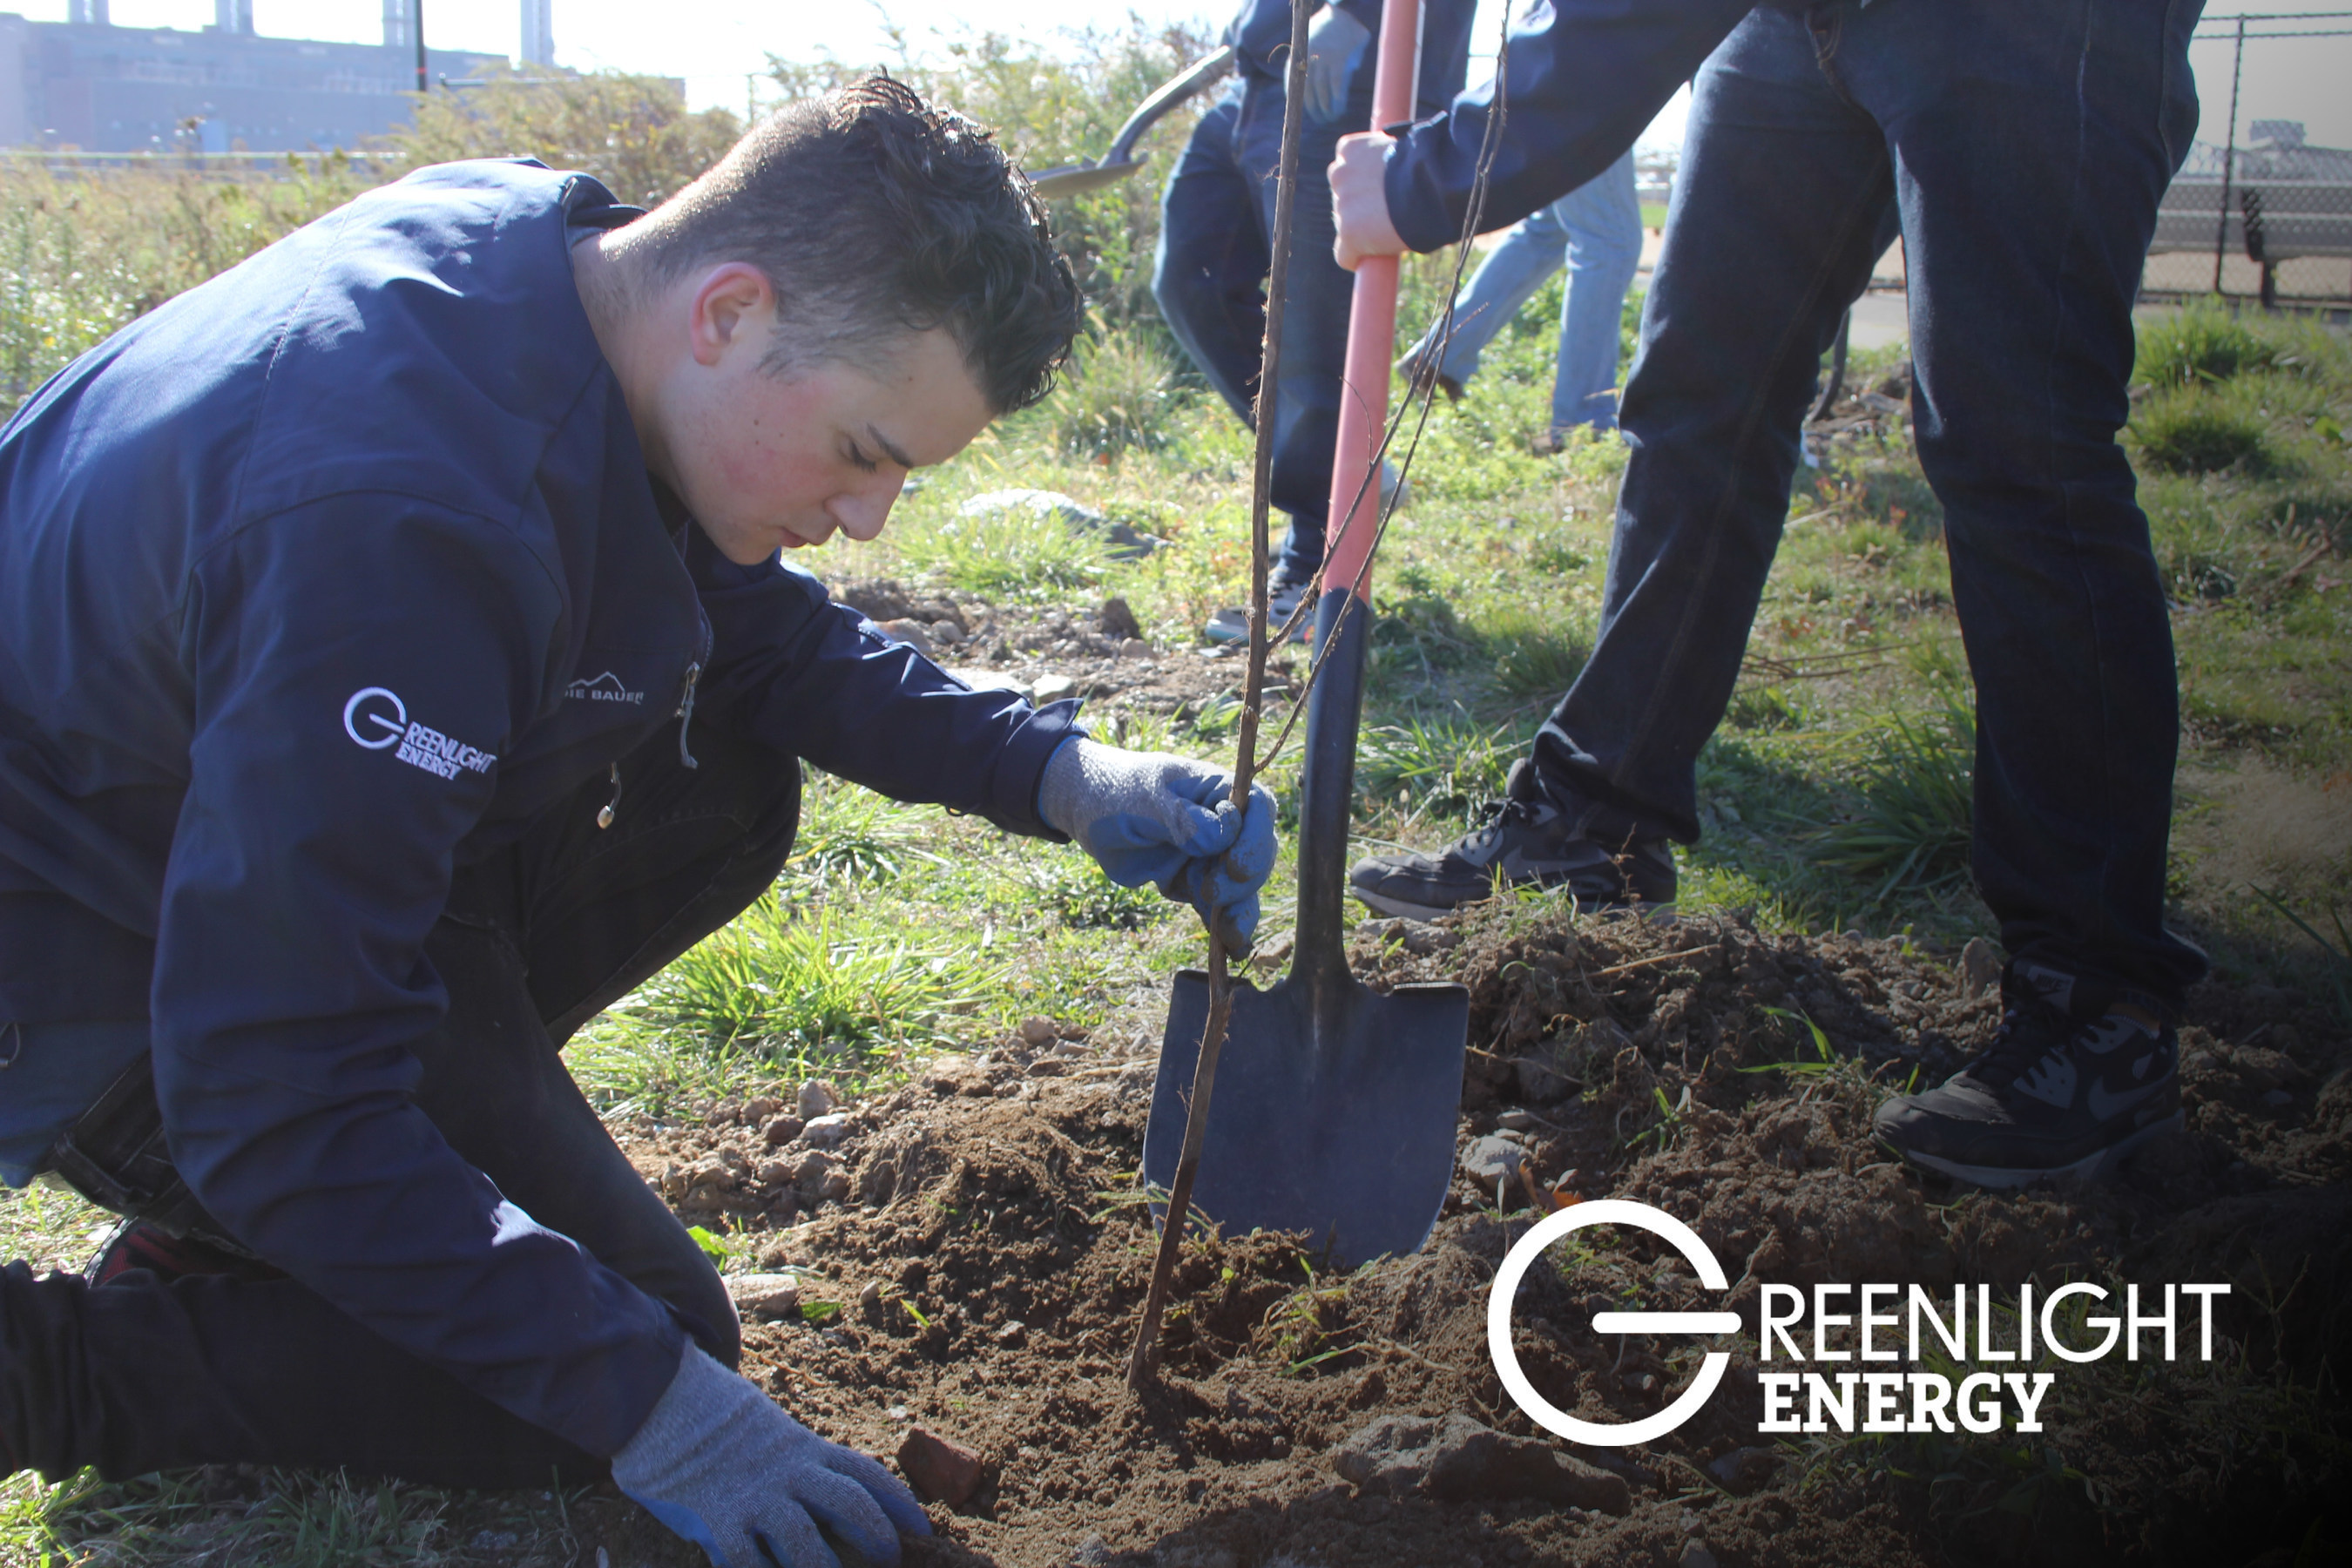 Greenlight Energy Powers Forward with New Solar, LED Lighting and Renewable, Fixed-Rate Energy Plans. Greenlight has also put their money-and muscles-where their mouth is, donating and planting nearly 400 trees to Randall's Island parks to commemorate America Recycles Day last month.  GOGREENLIGHTENERGY.COM